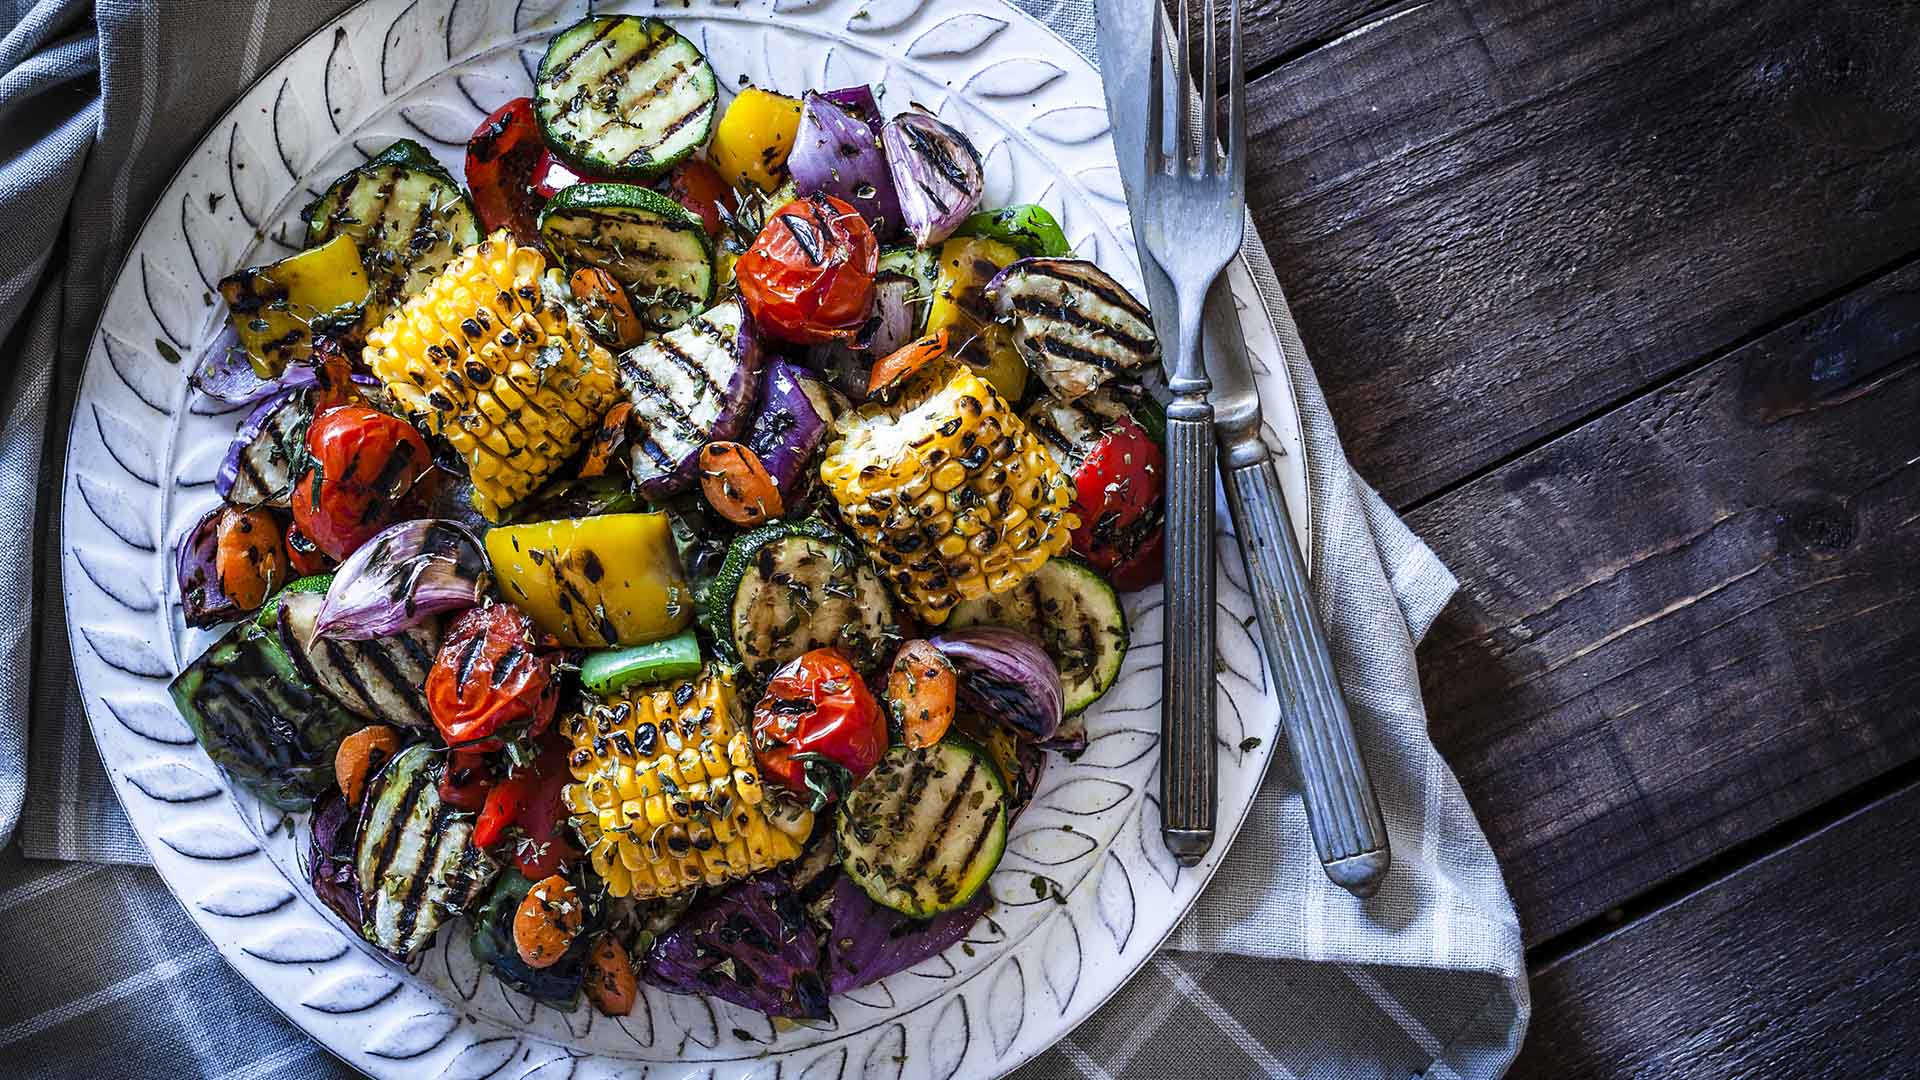 Grilled vegetables plate shot from above on rustic wooden table